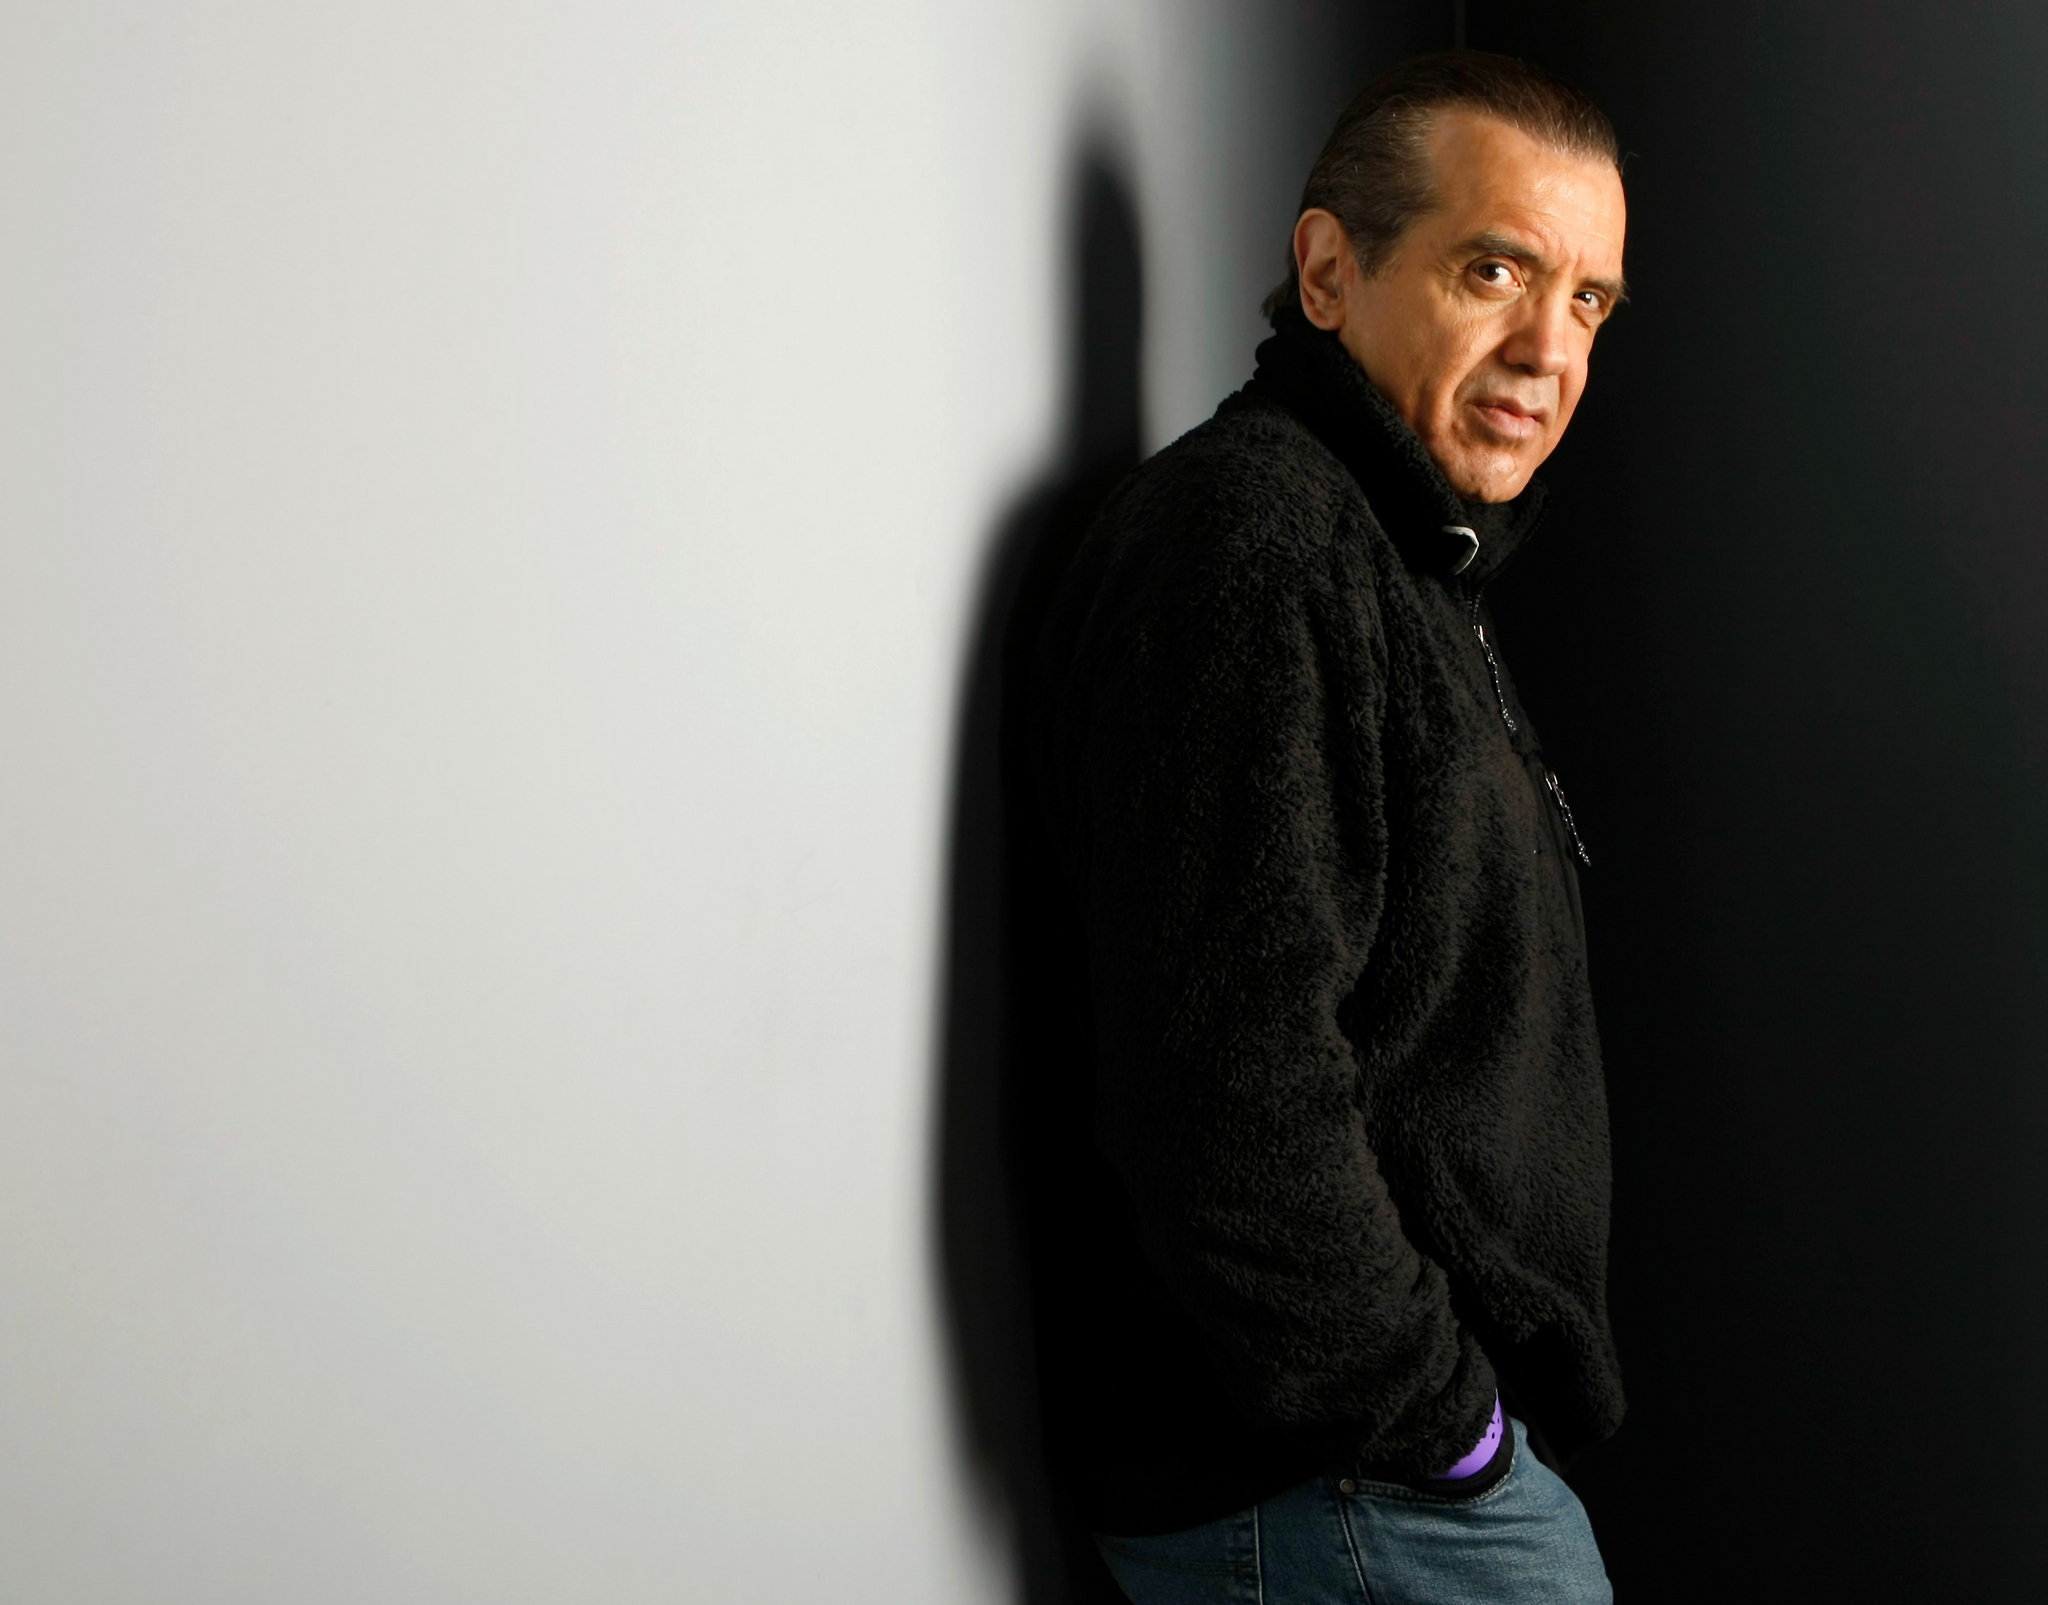 Chazz Palminteri HQ wallpapers